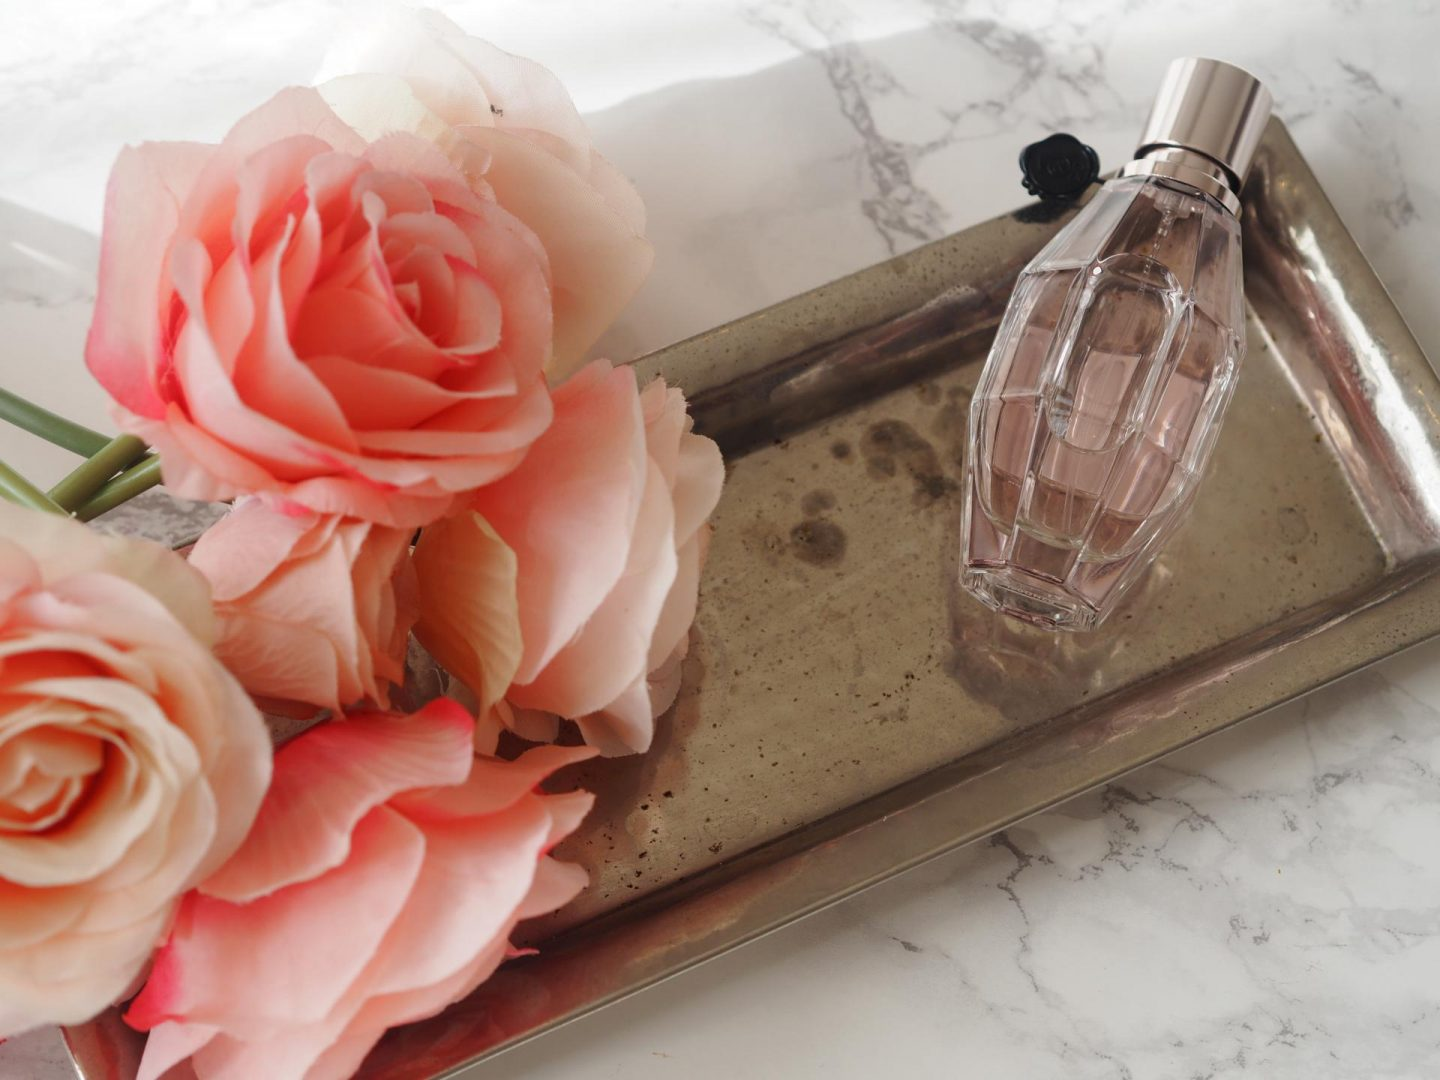 Around The World Beauty - Product: Flowerbomb Bloom Eau de Toilette